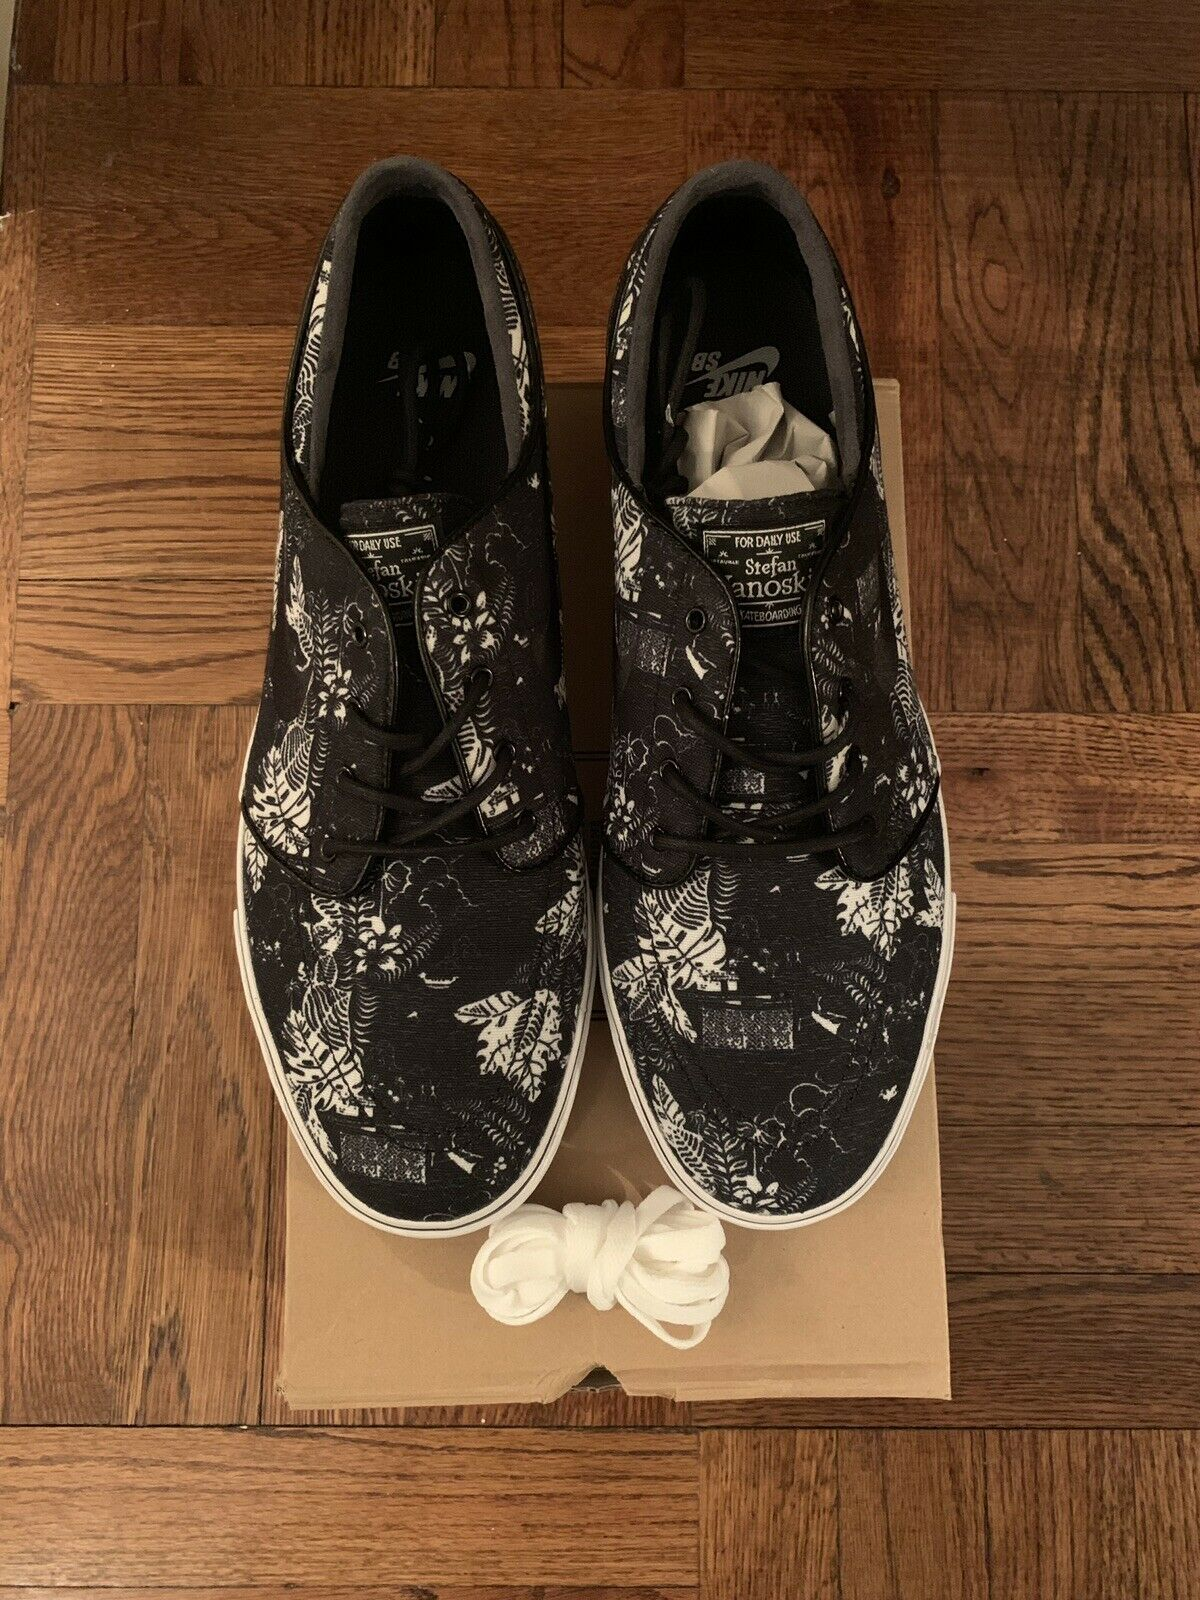 Nike SB Stefan Janoski Black Floral 11.5 US Brand New DS Concepts Dunk Lobster